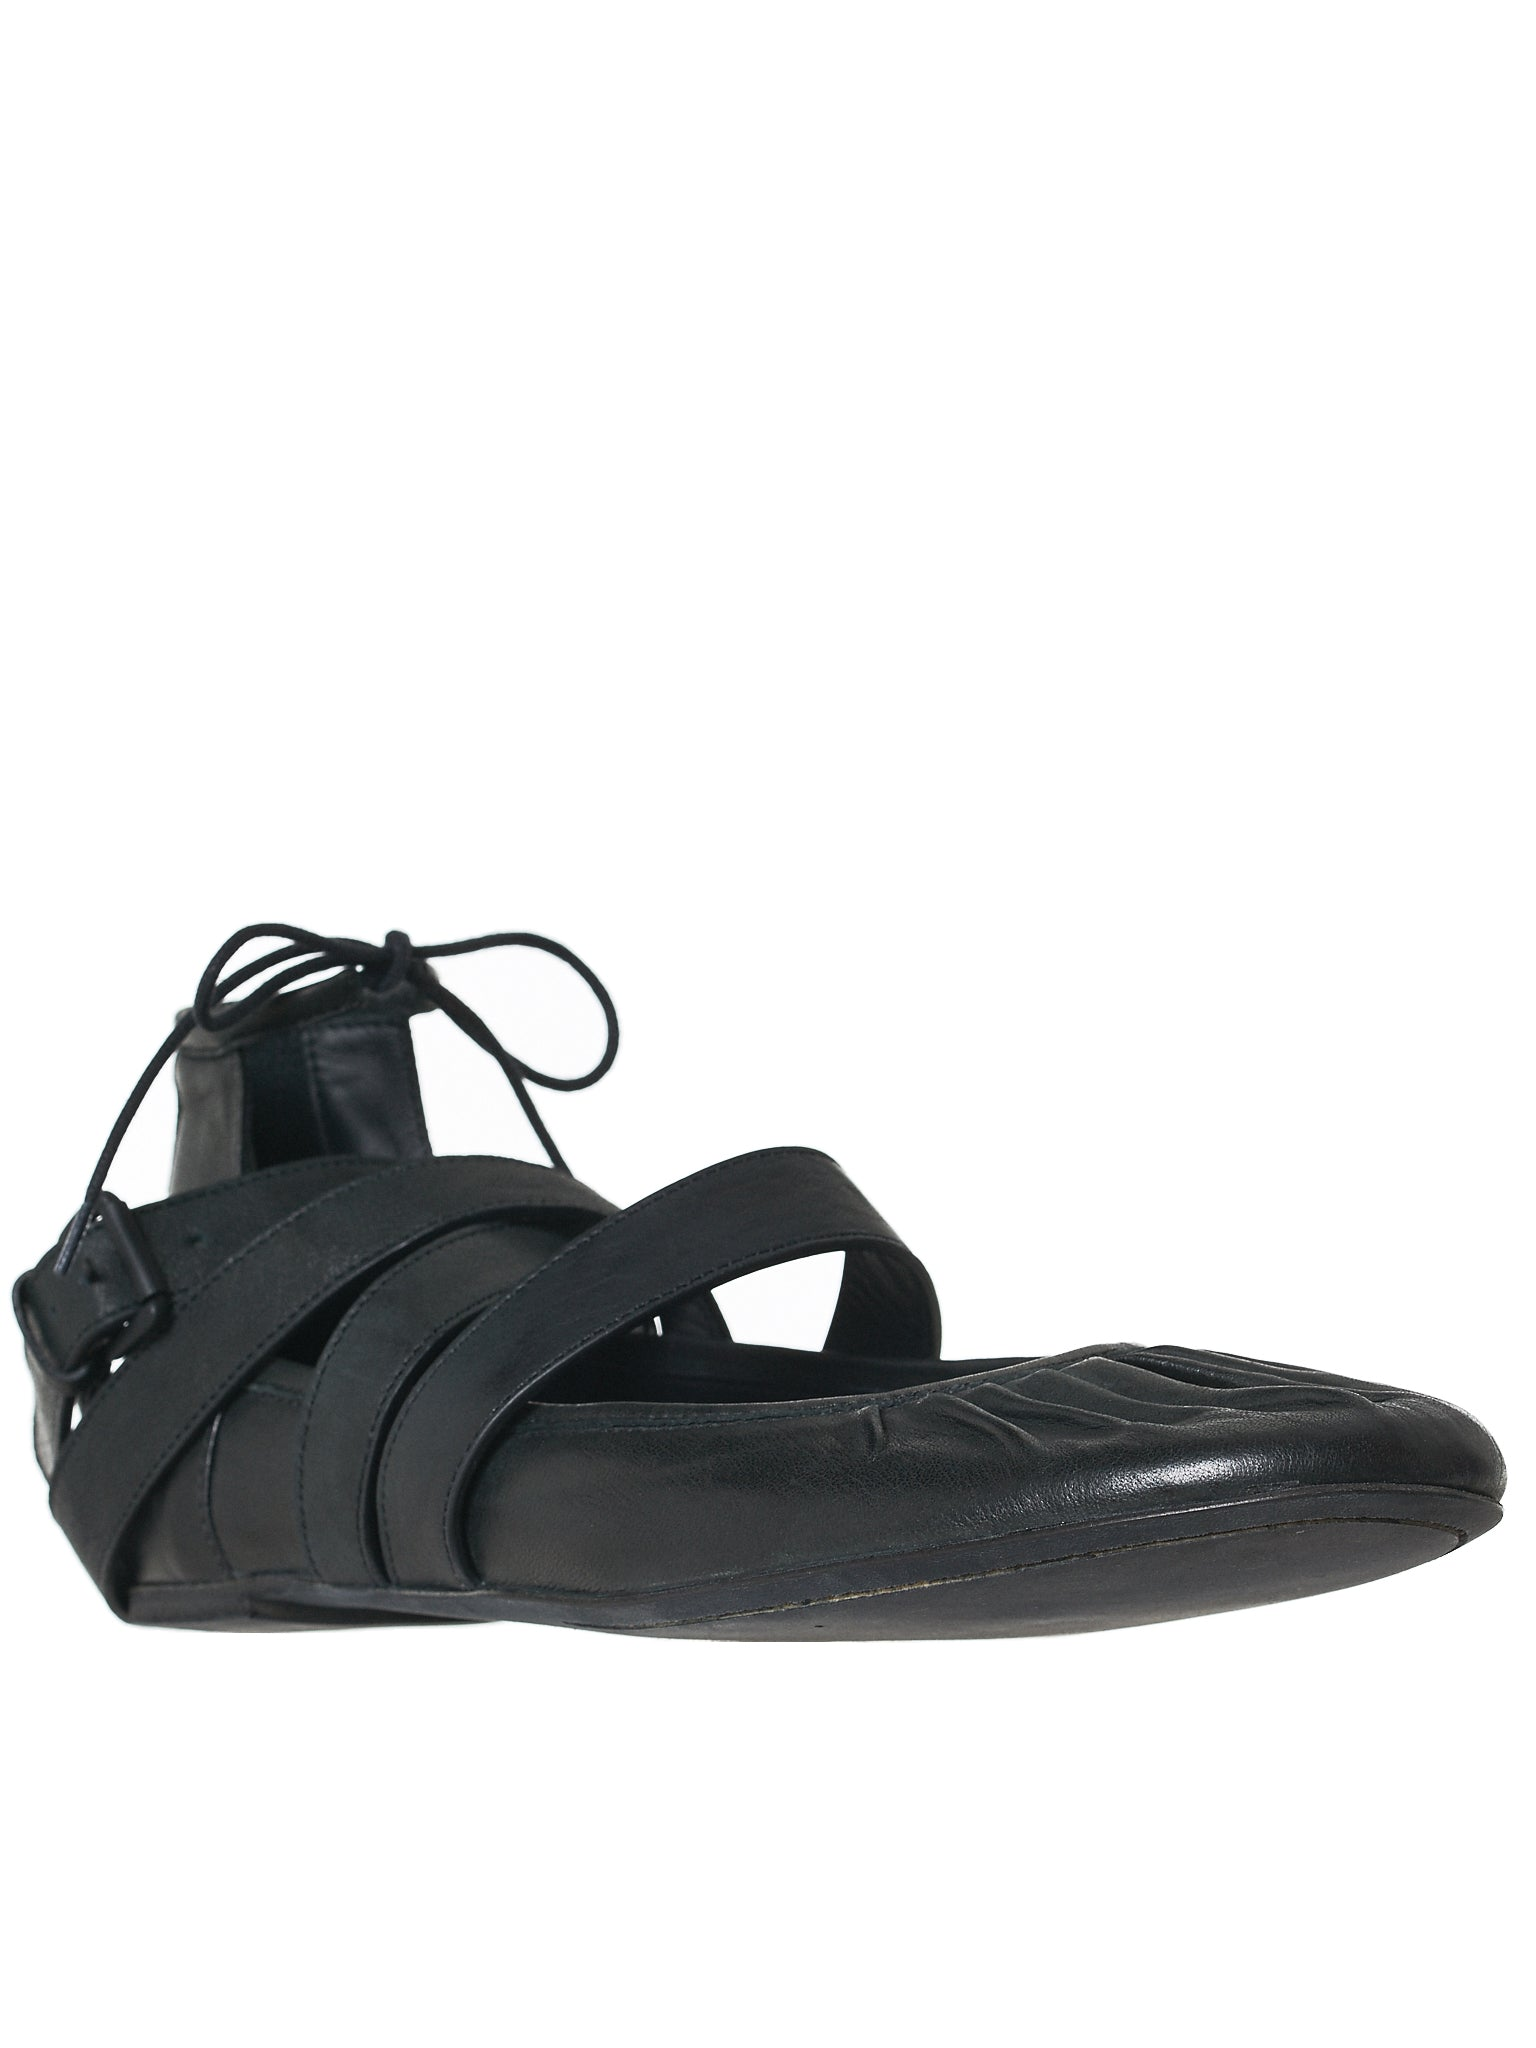 Ann Demeulemeester Leather Flats - Hlorenzo Side